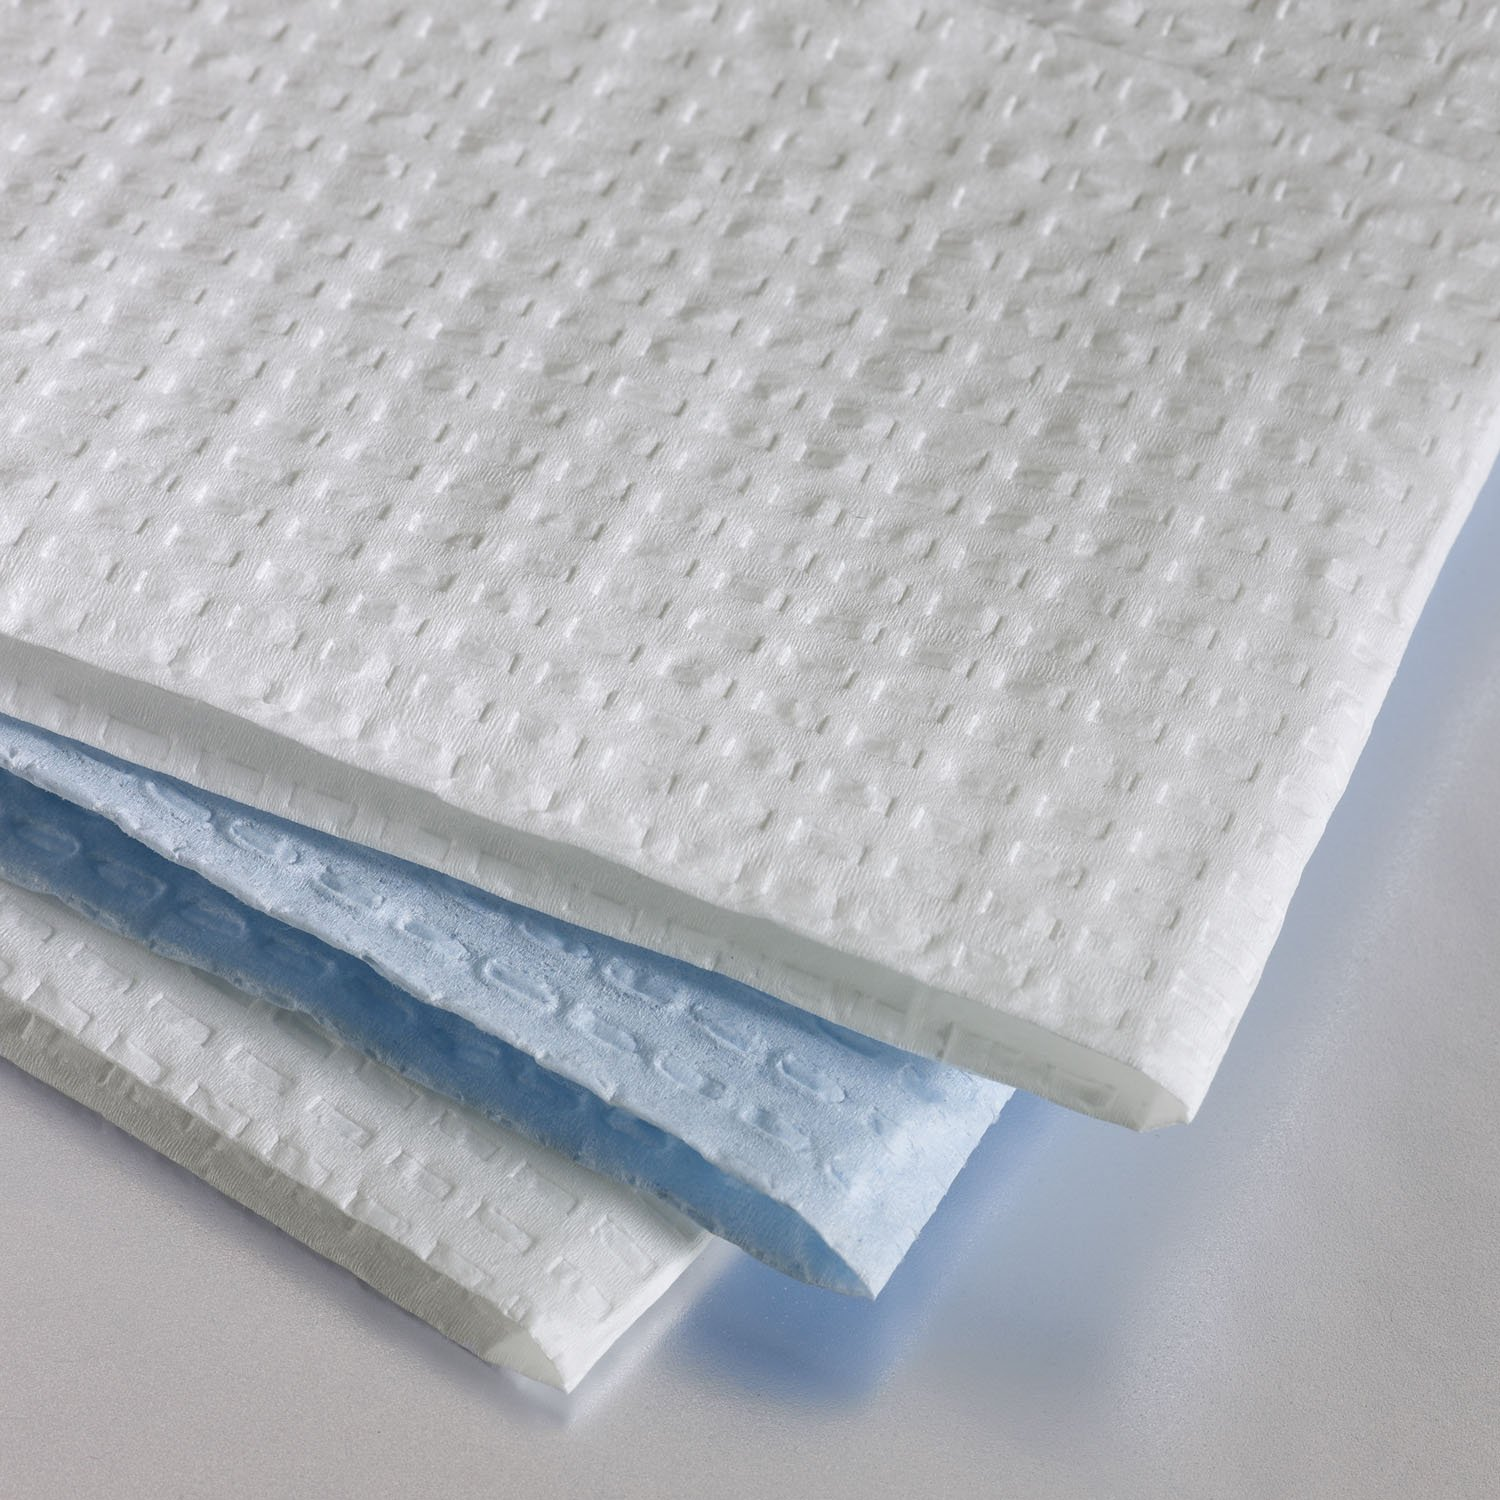 Graham Medical 70170N Towel, 3 Ply, 13.5''w x 18''l, Overall Emboss (Pack of 500)